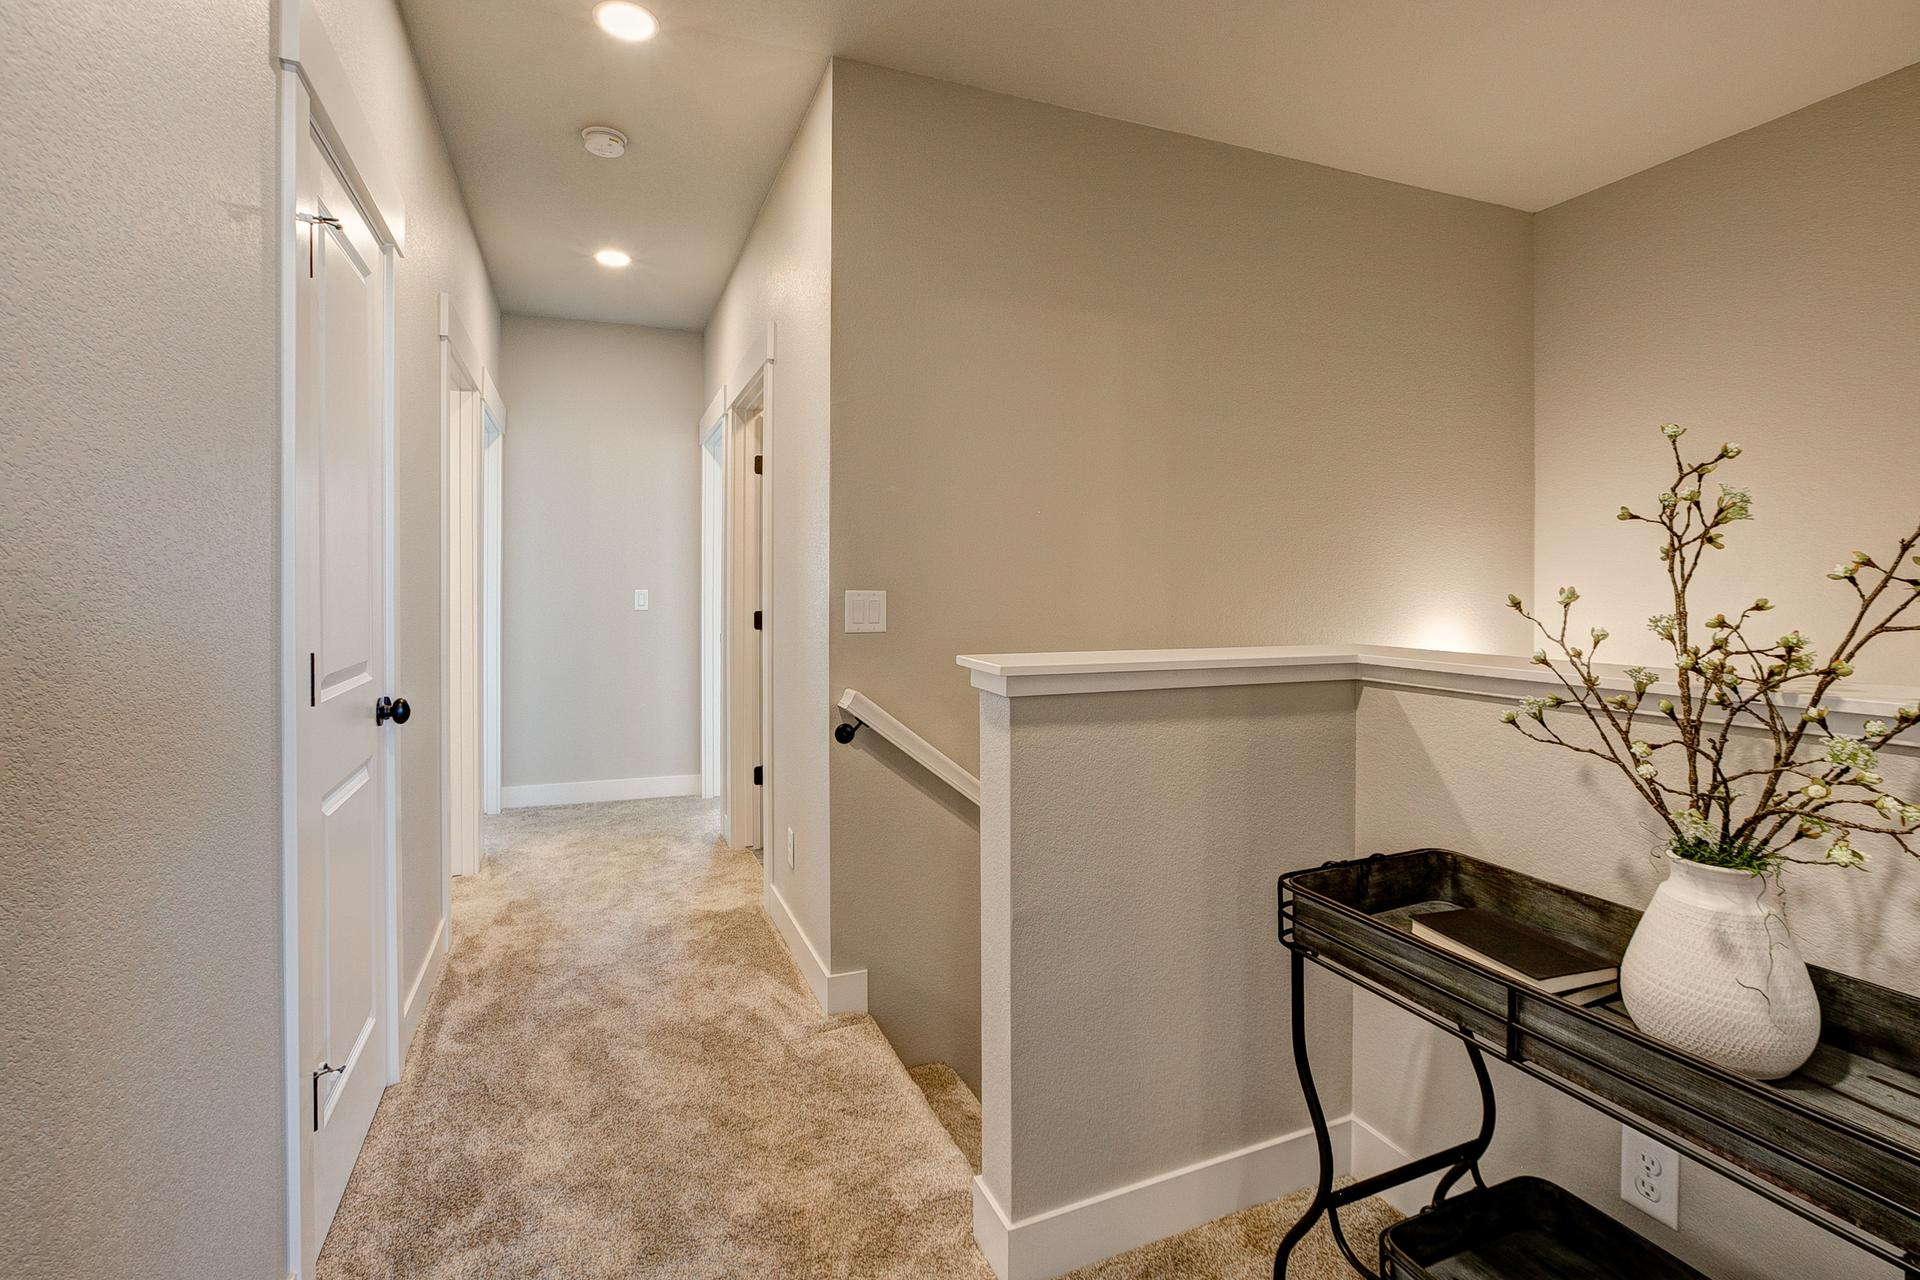 Upstairs Hallway - Not Actual Home - Finishes Will Vary